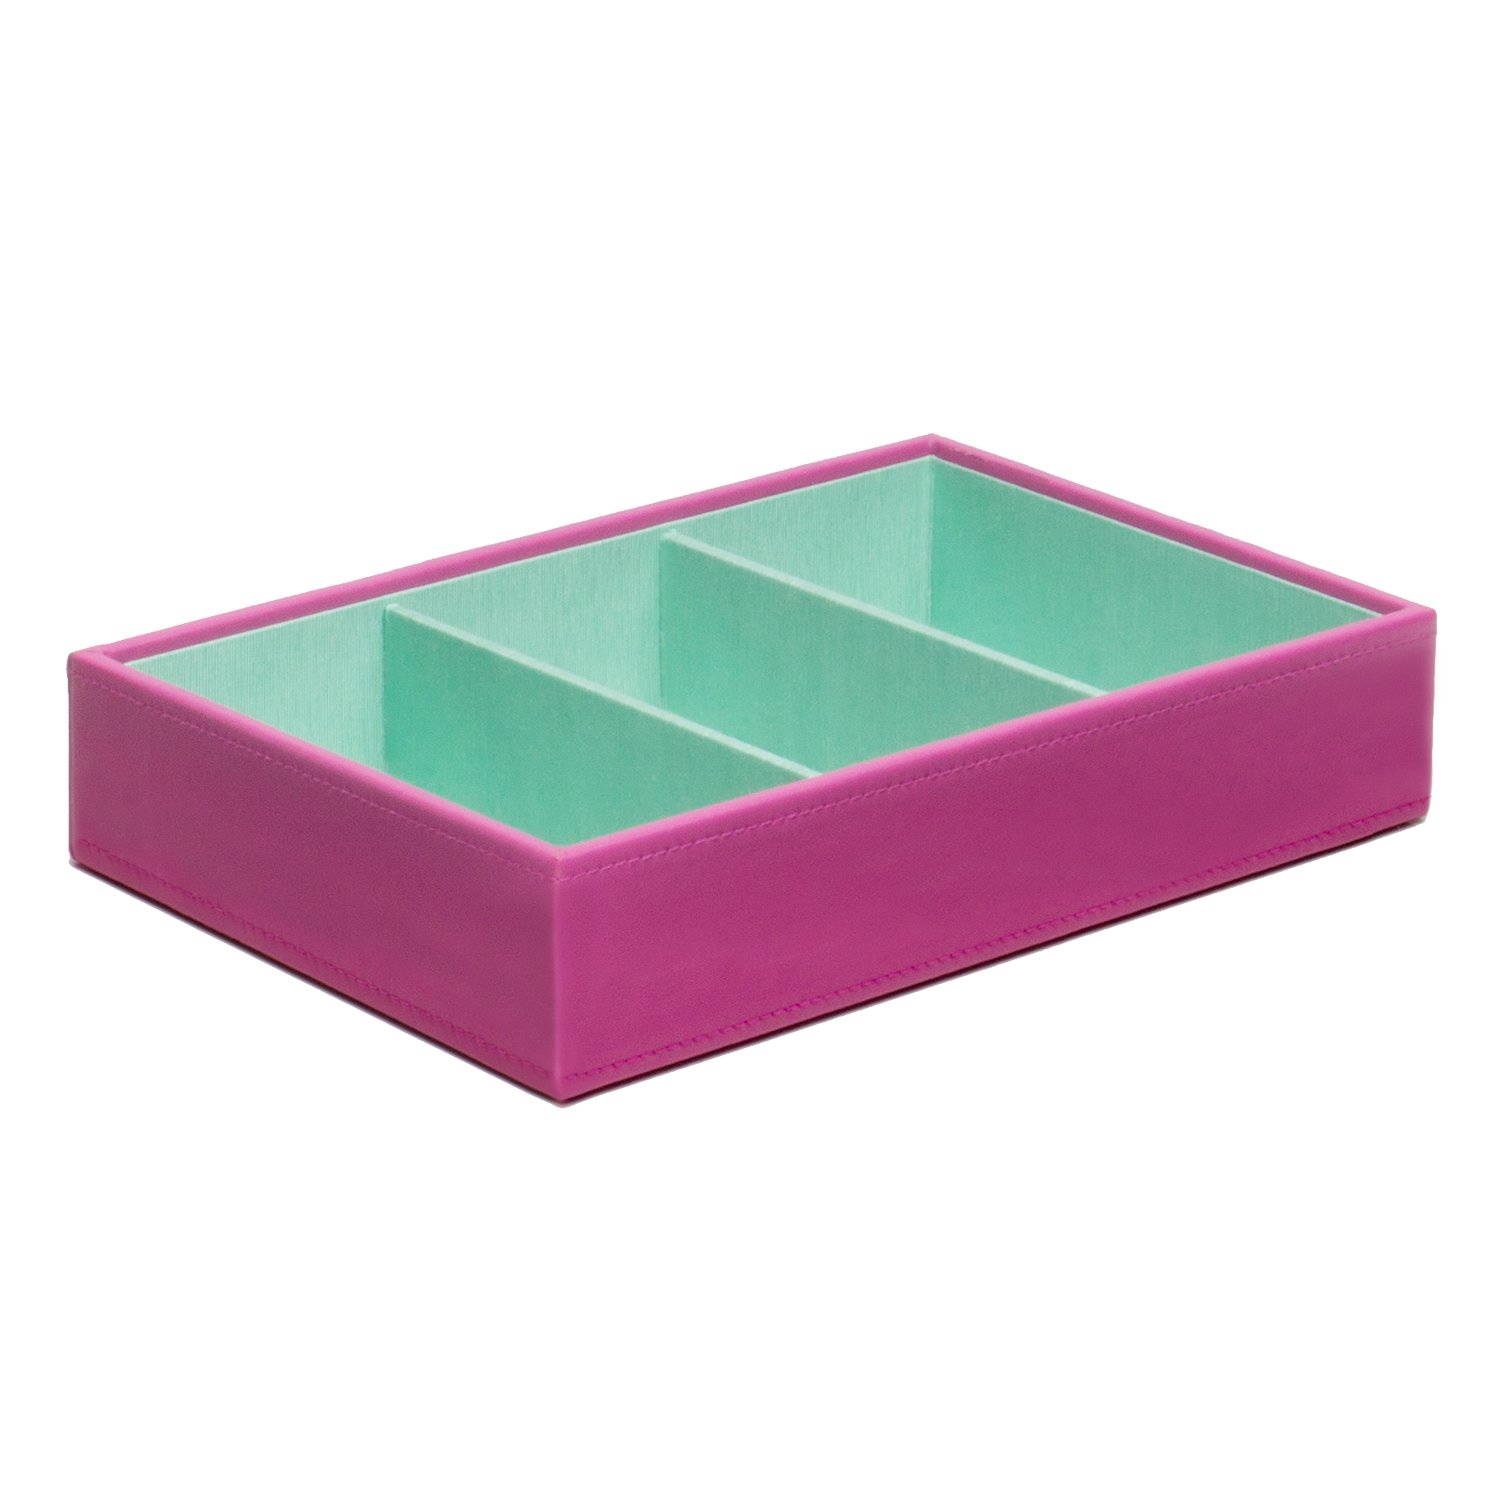 WOLF 318659 Medium Deep Stackable Jewelry Tray, Orchid